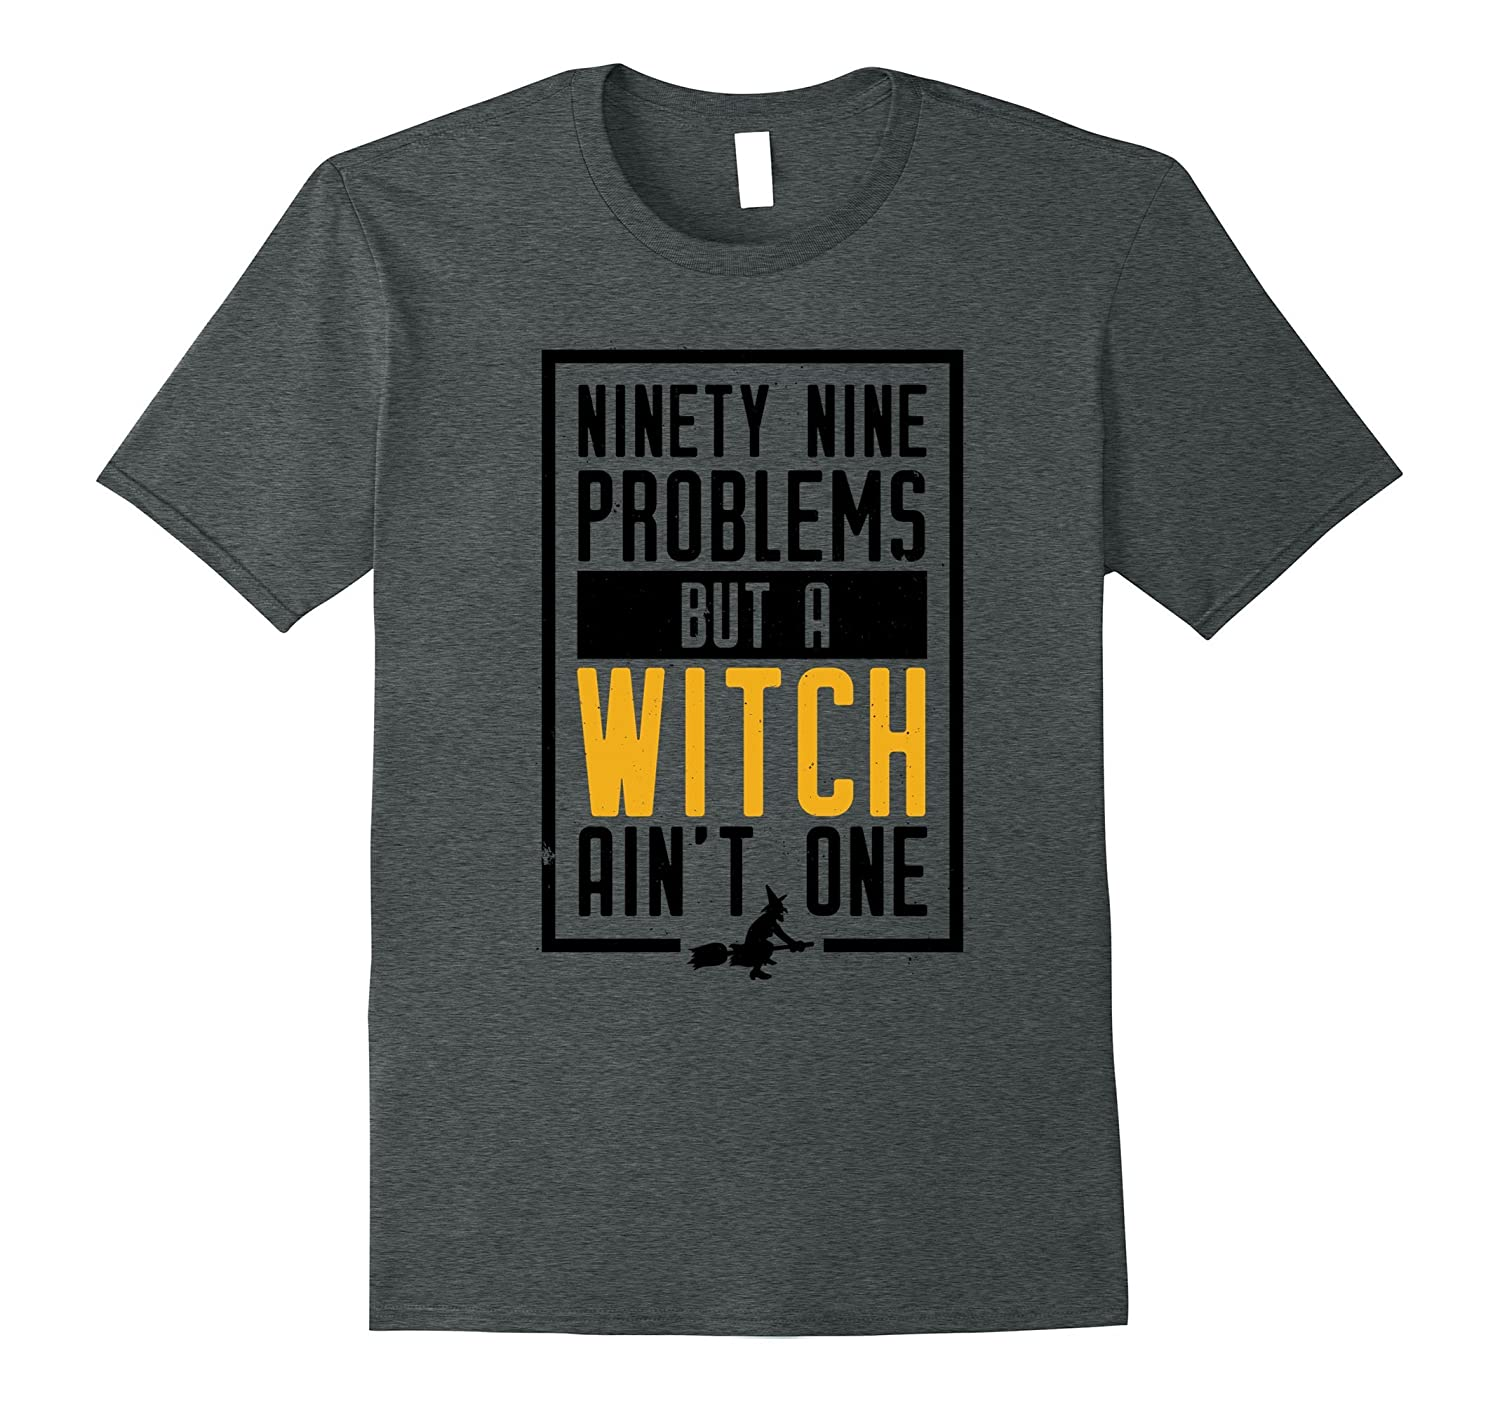 99 Problems But A Witch Ain't One Funny Halloween T-shirt-T-Shirt